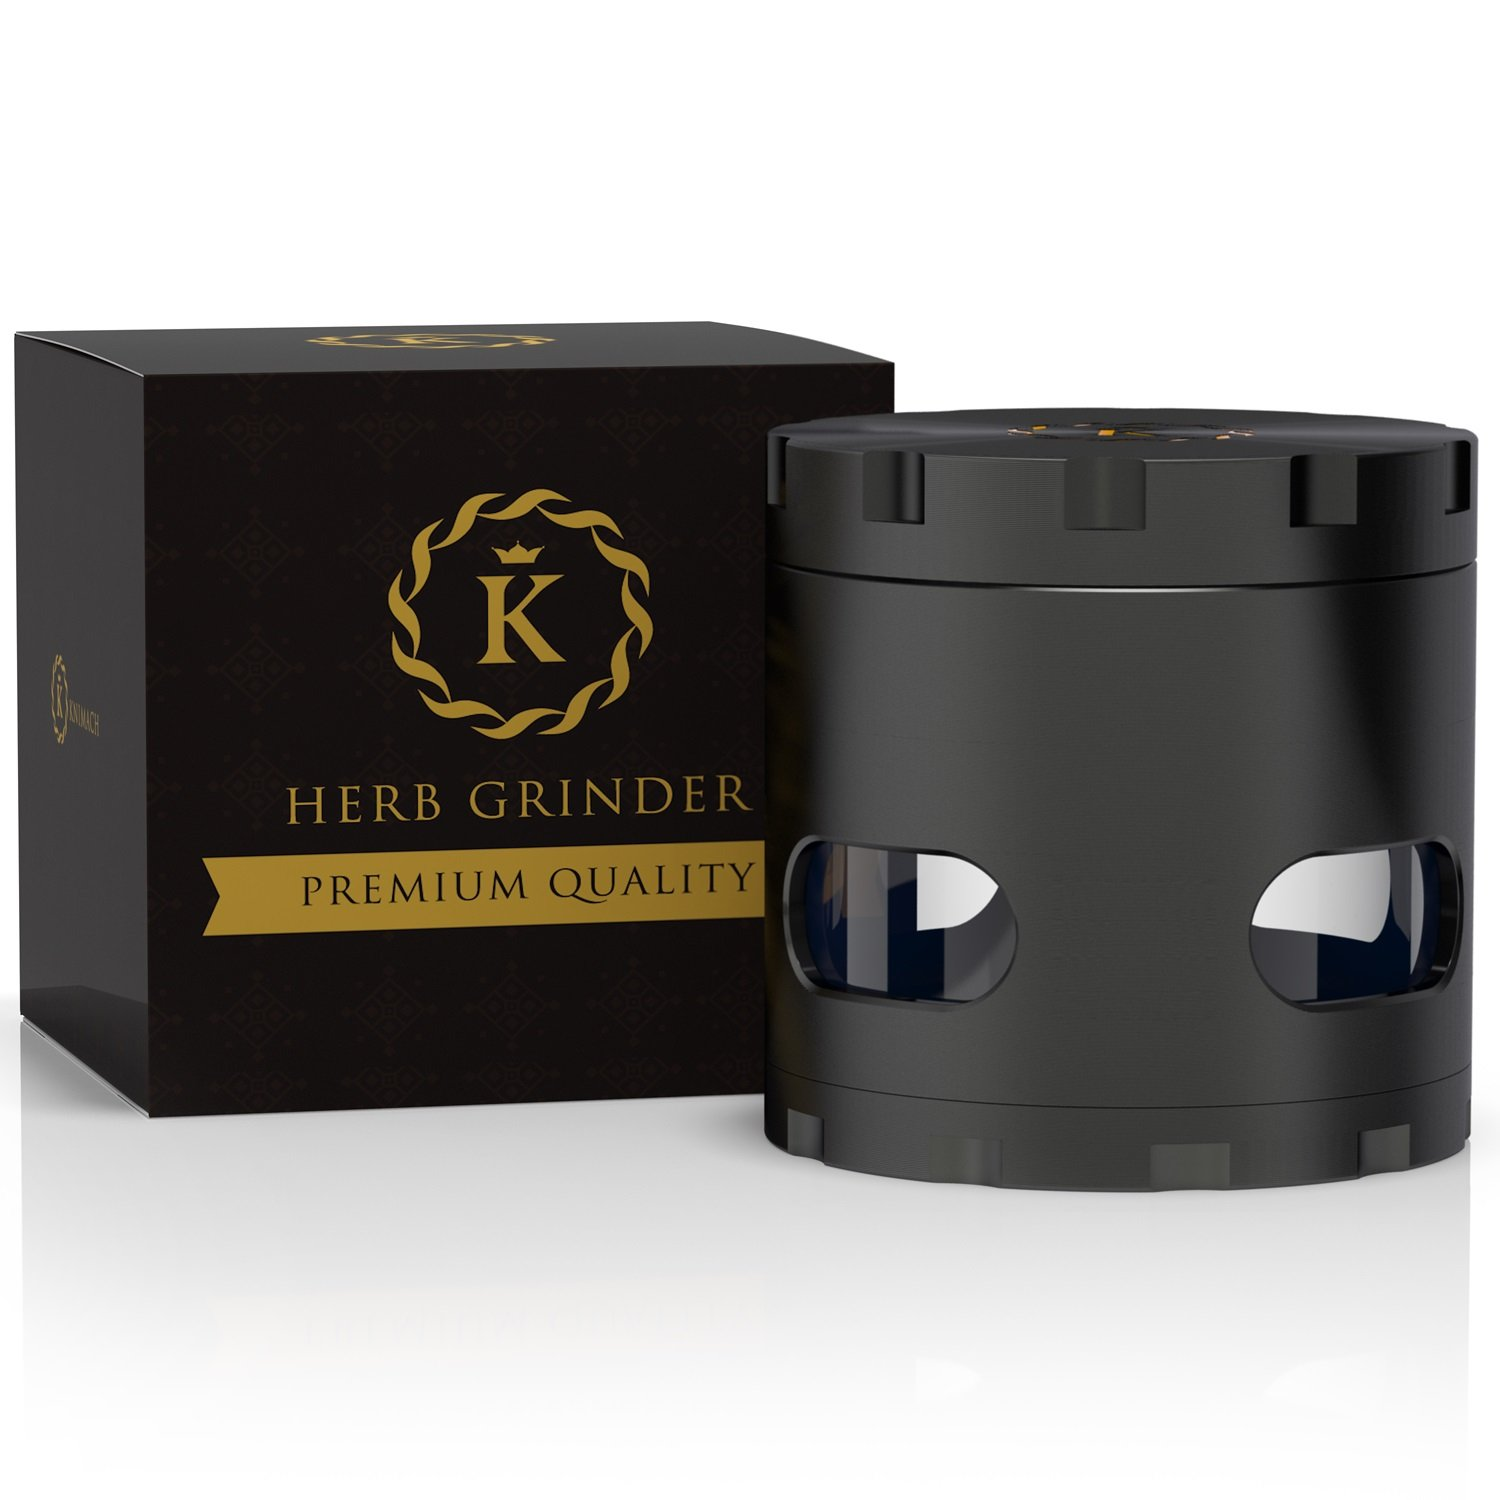 Herb And Spices 2 Inch 4 Piece Grinder With Pollen Catcher Tray 53 Perfect Grinding Teeth For All Grinding Purpose Very Easy To Clean Compact And Useful, Black Color. By K-brand by Knimach